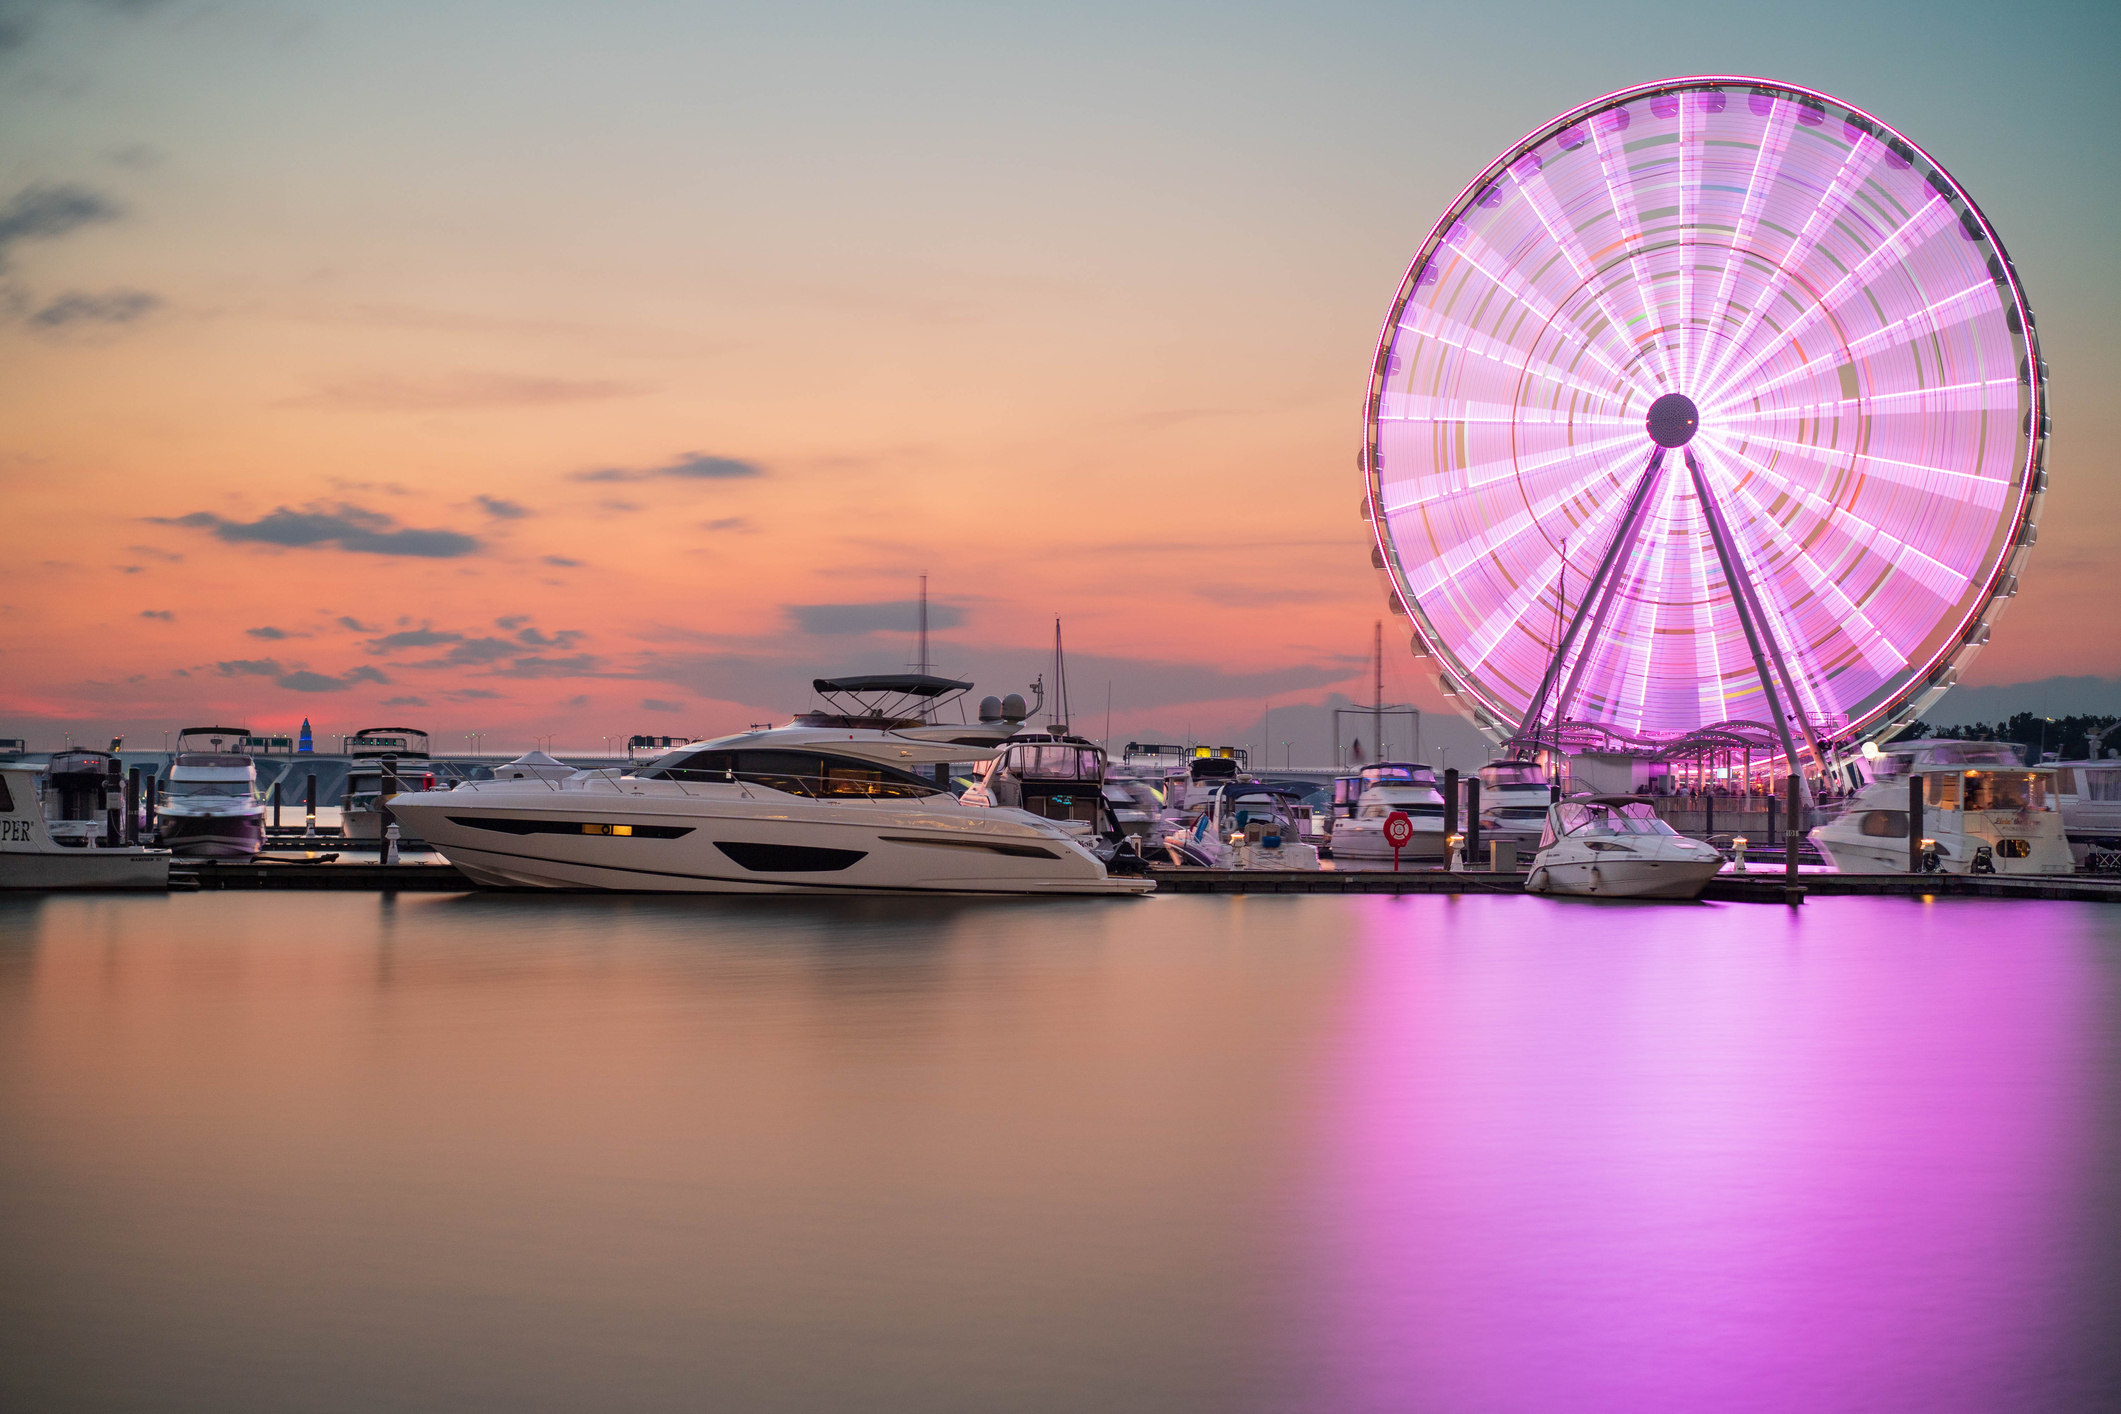 Ferris wheel seen at sunset time at the National Harbor in Oxon Hill, Maryland